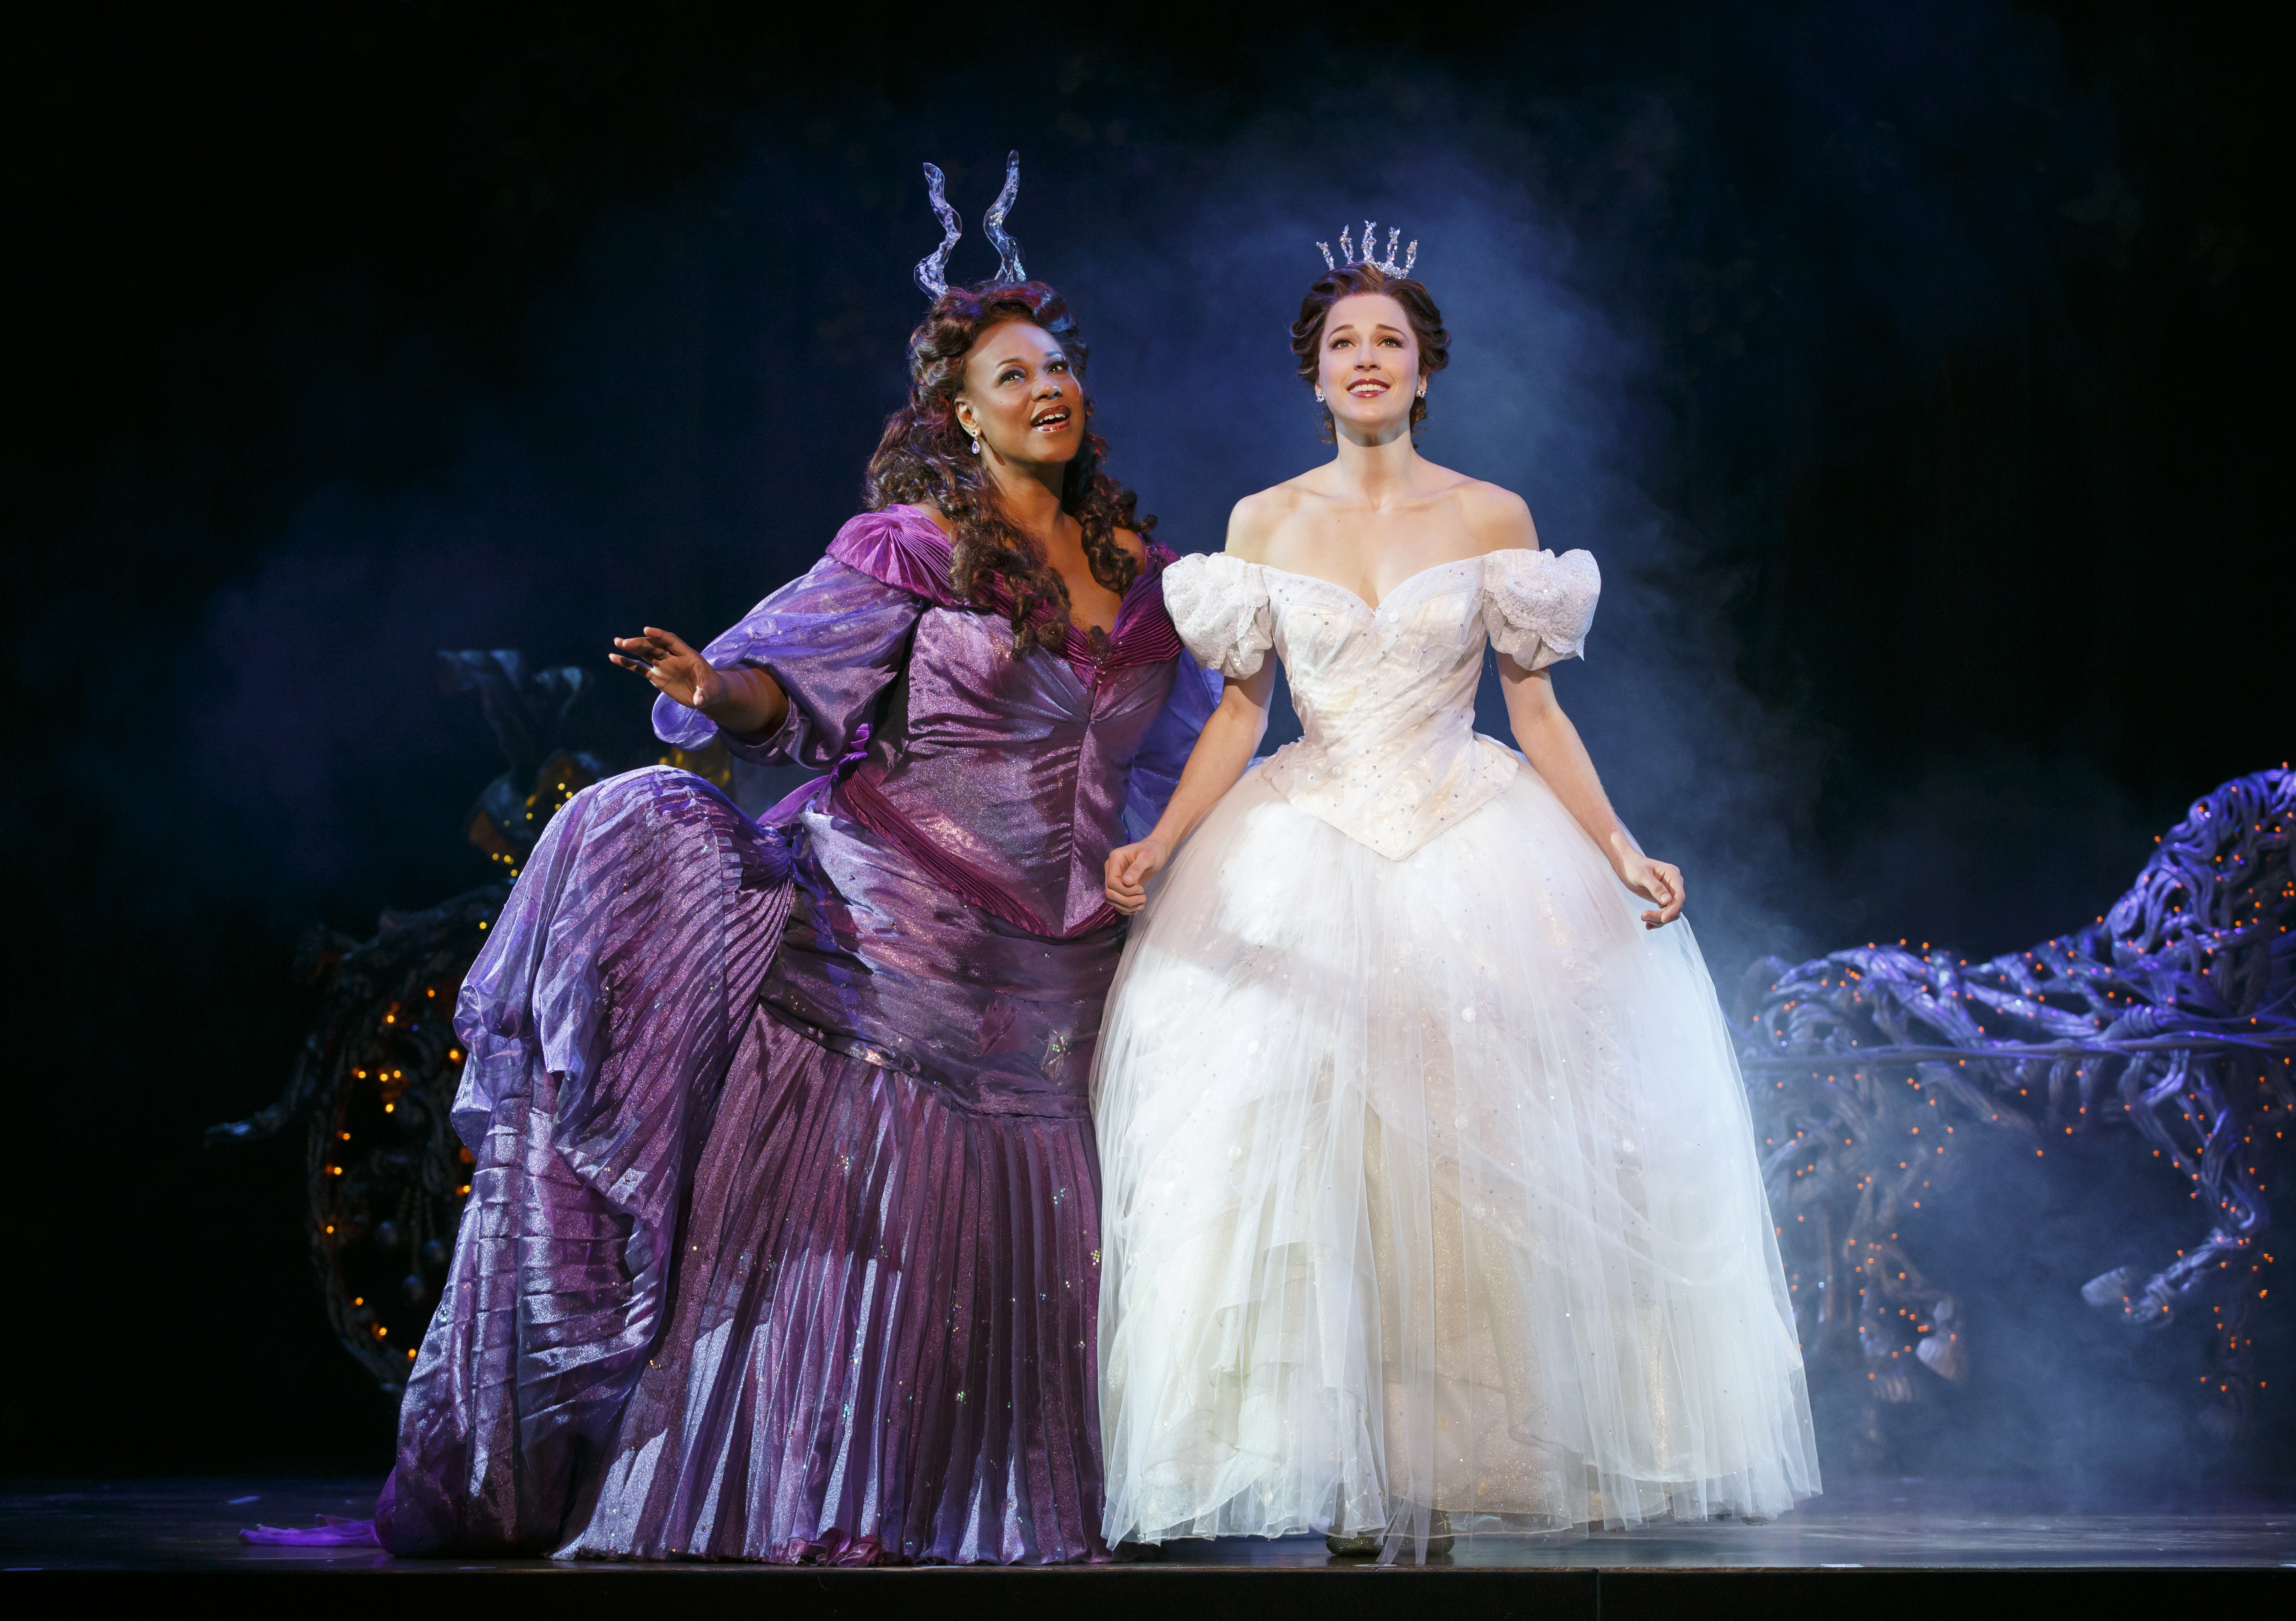 'Cinderella' collaboration allows you to be a fairy godmother